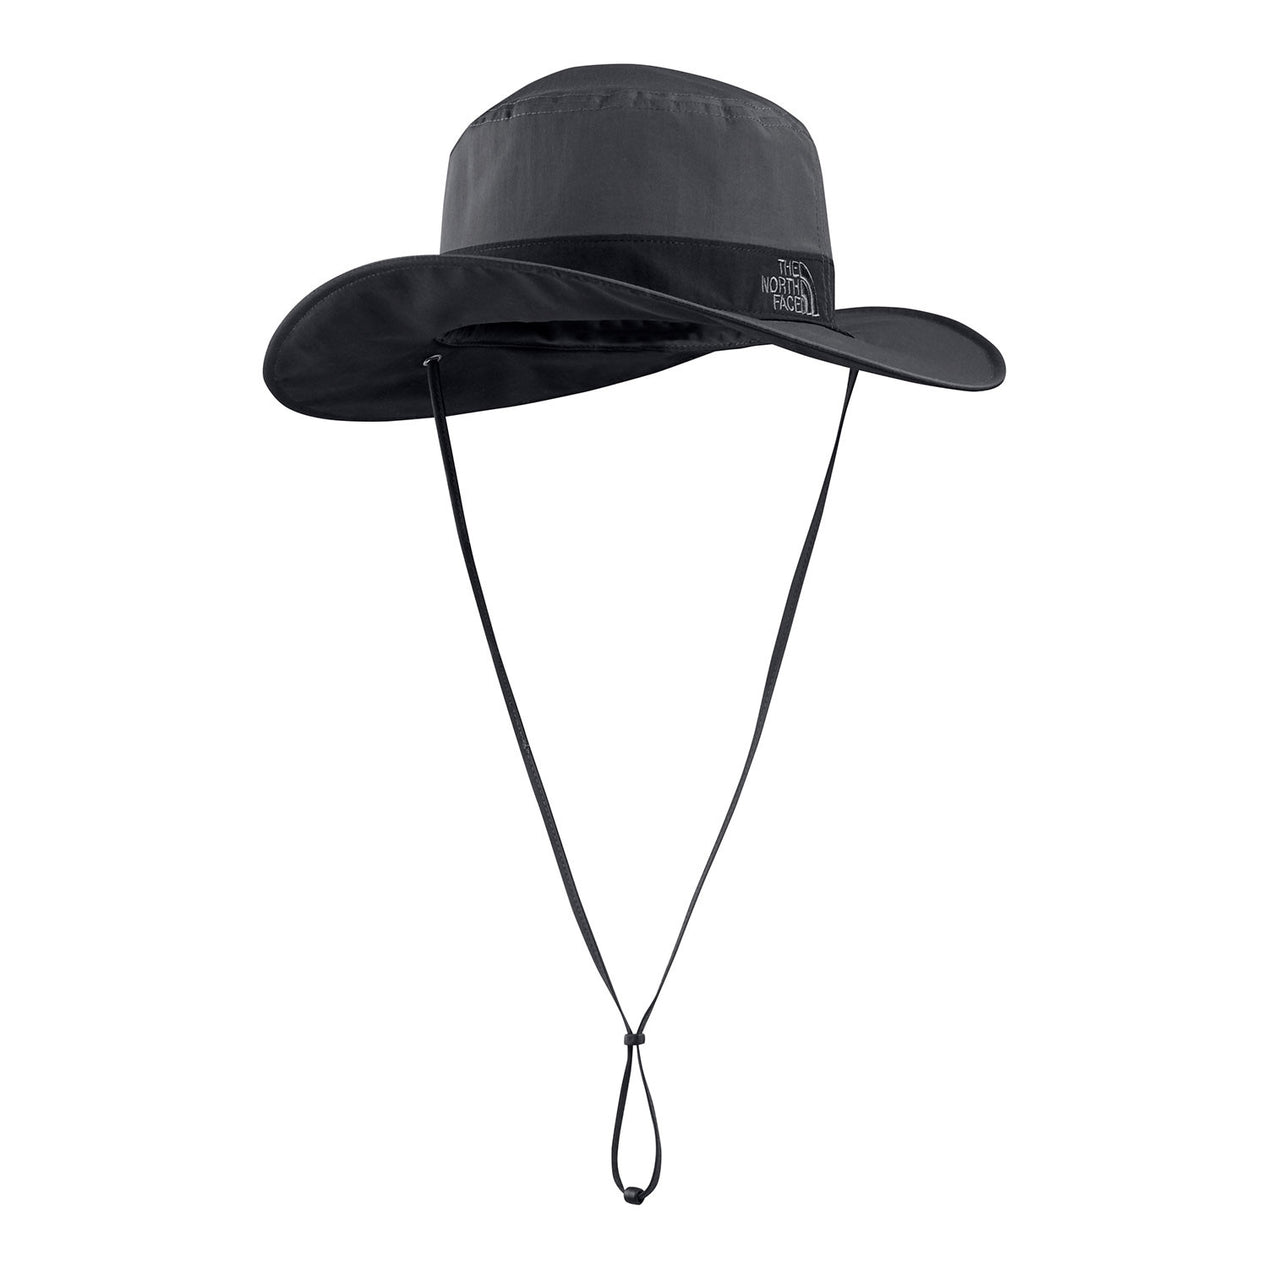 c05431745 The North Face Chapeau reversible Boonie